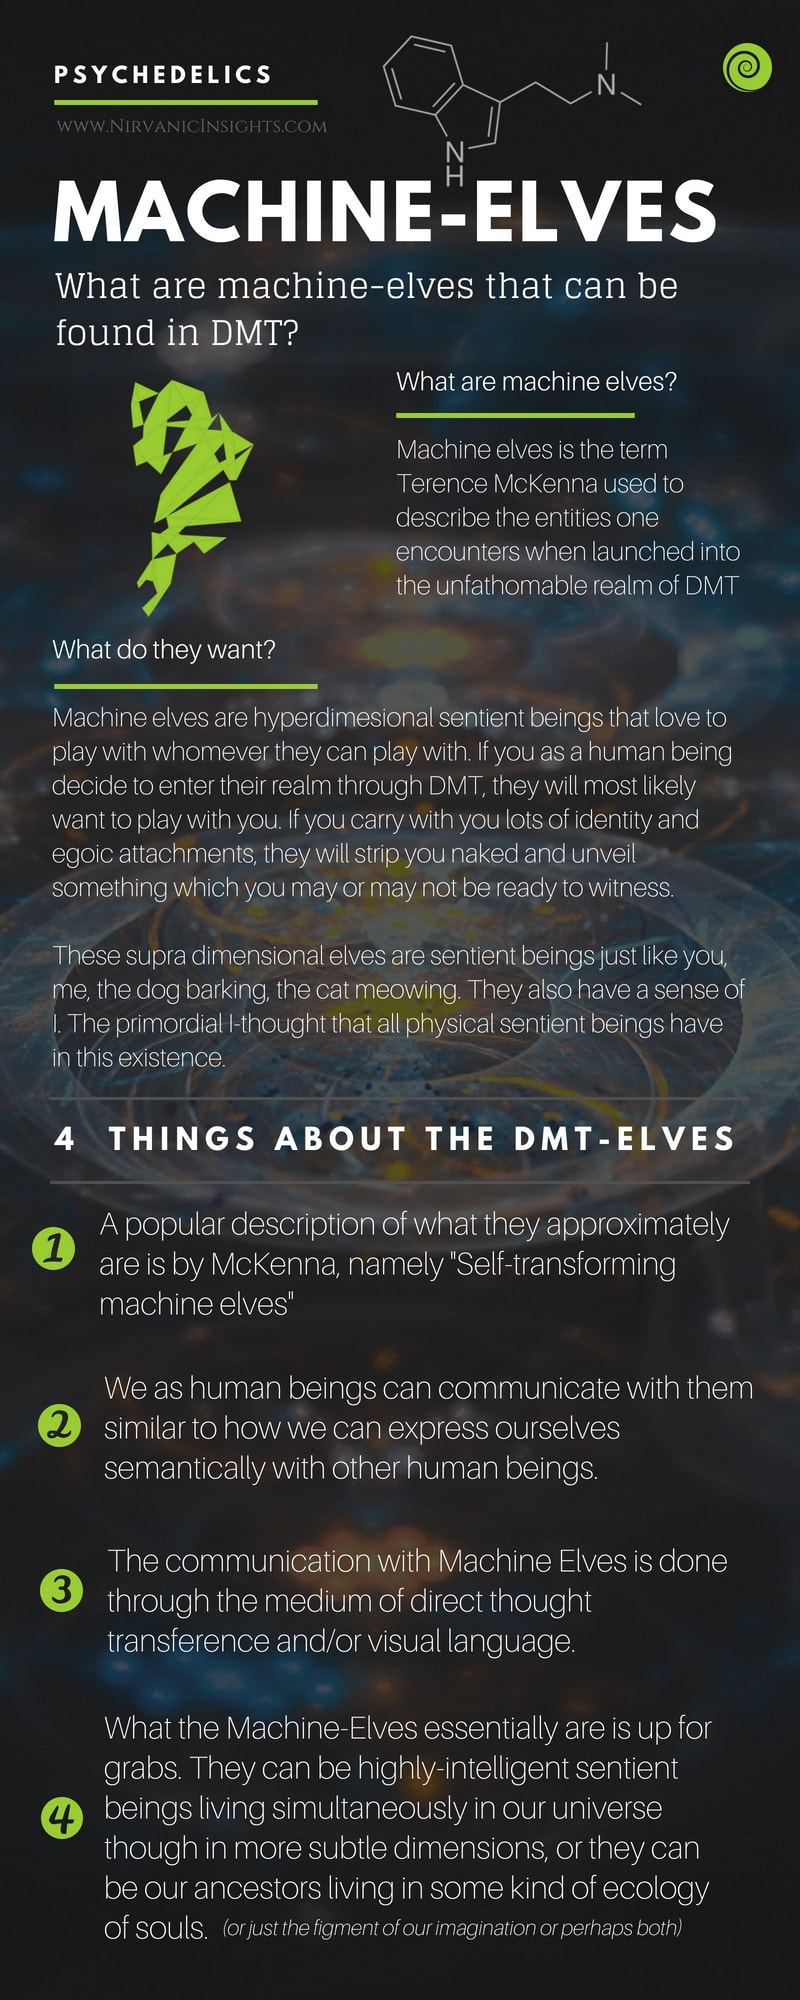 What are machine elves in DMT